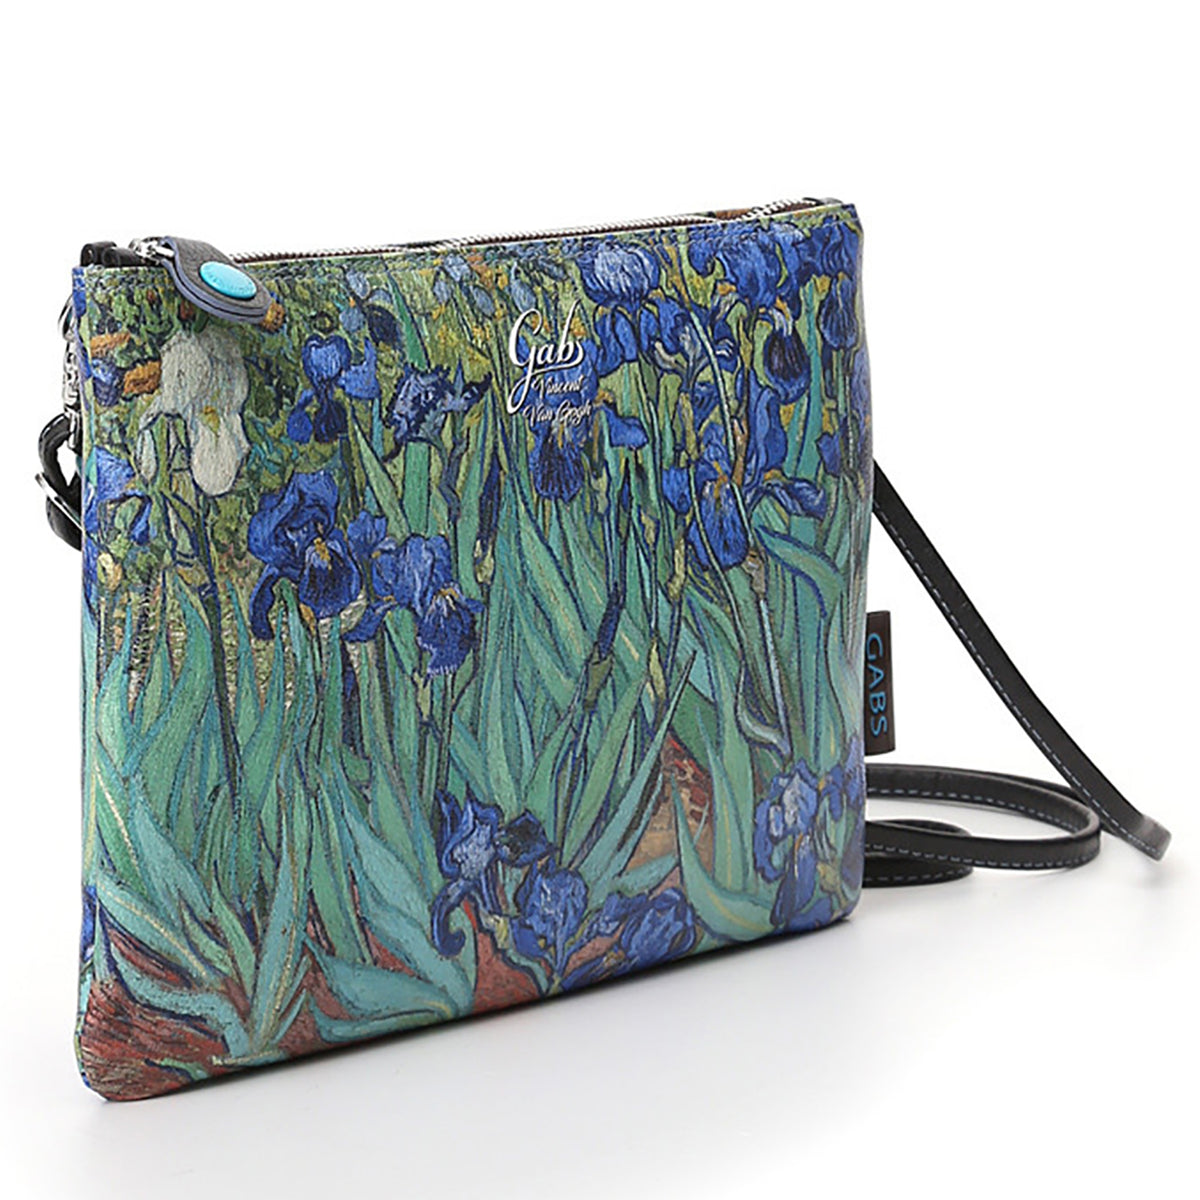 Clutch Bag featuring Van Gogh's Irises, by Gabs, Italy-Front/side View | Getty Store